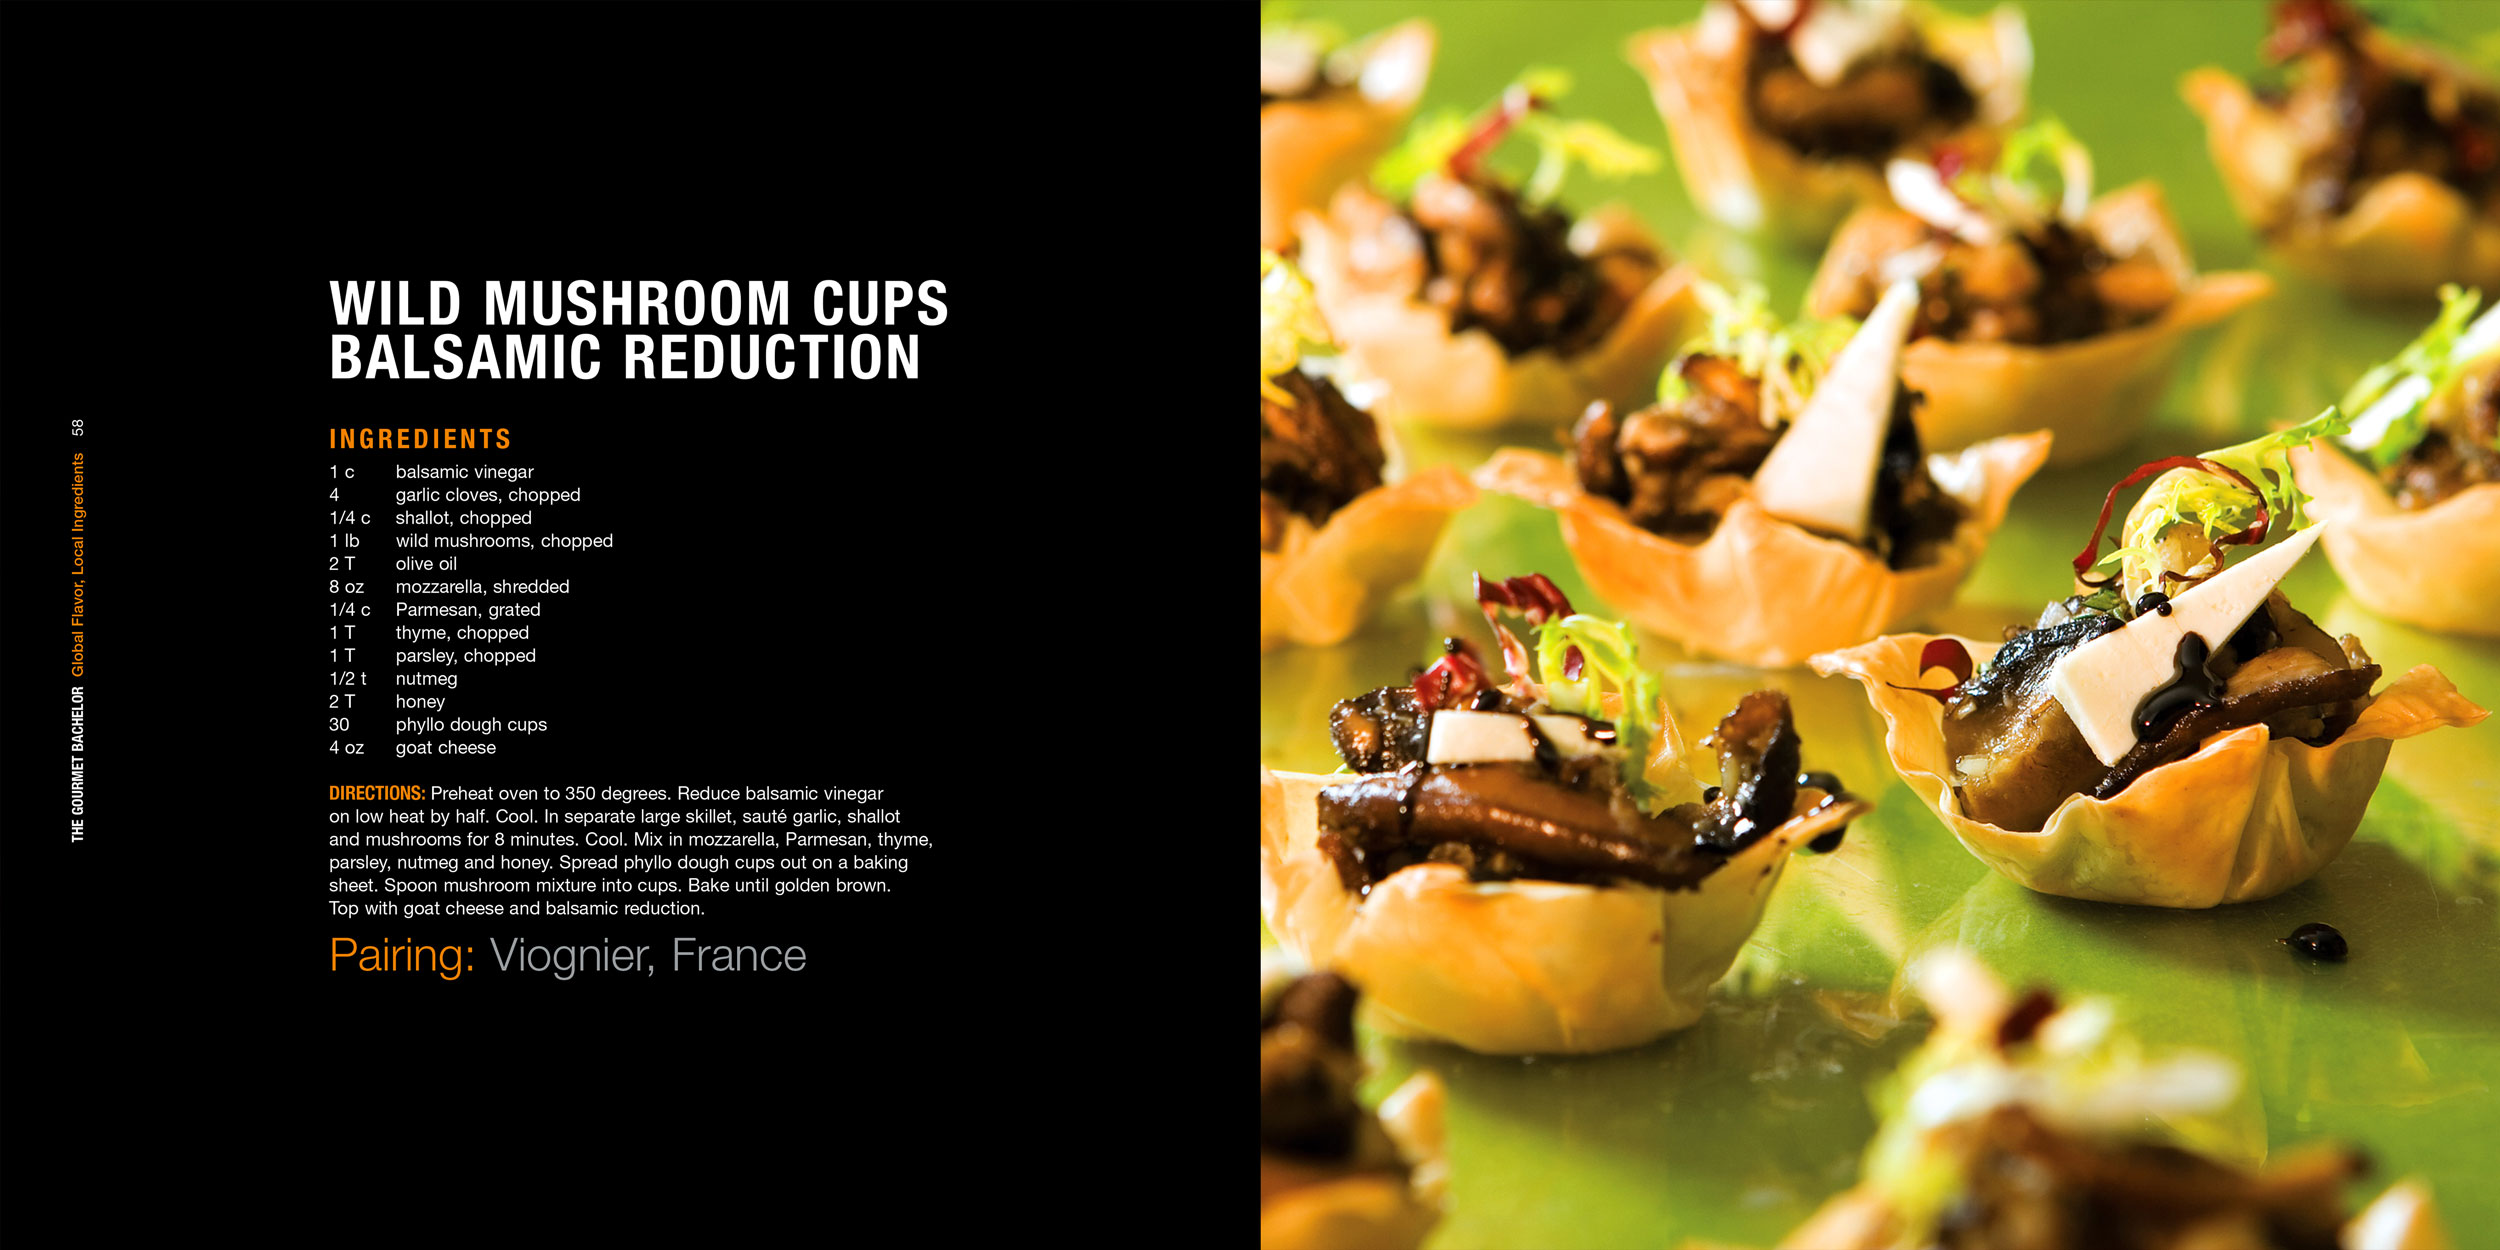 TGB_Wild_Mushroom_Cups_Balsamic_Reduction